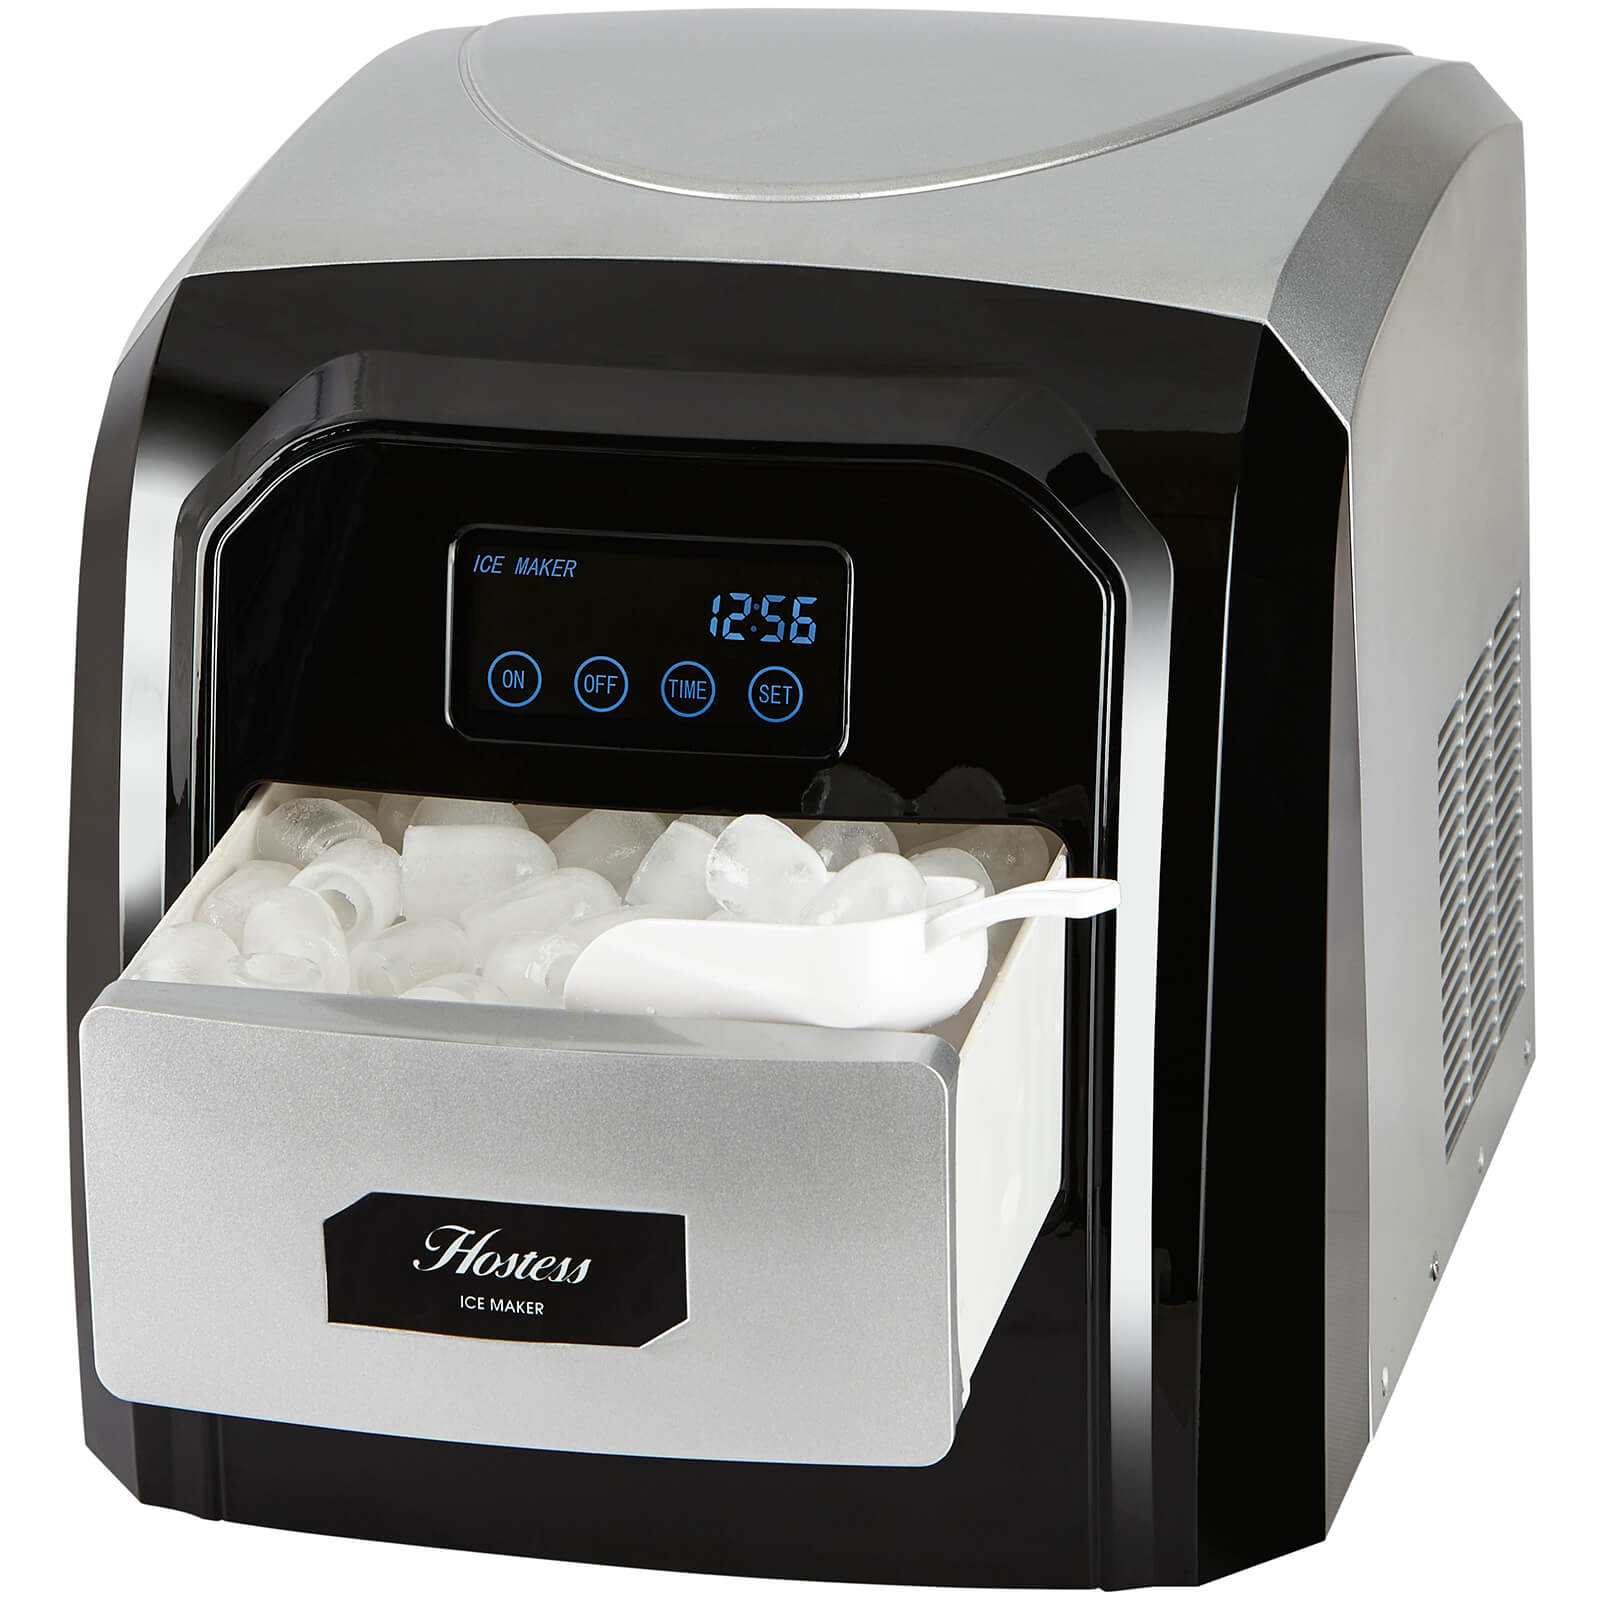 Hostess IM03A Table Top Ice Maker